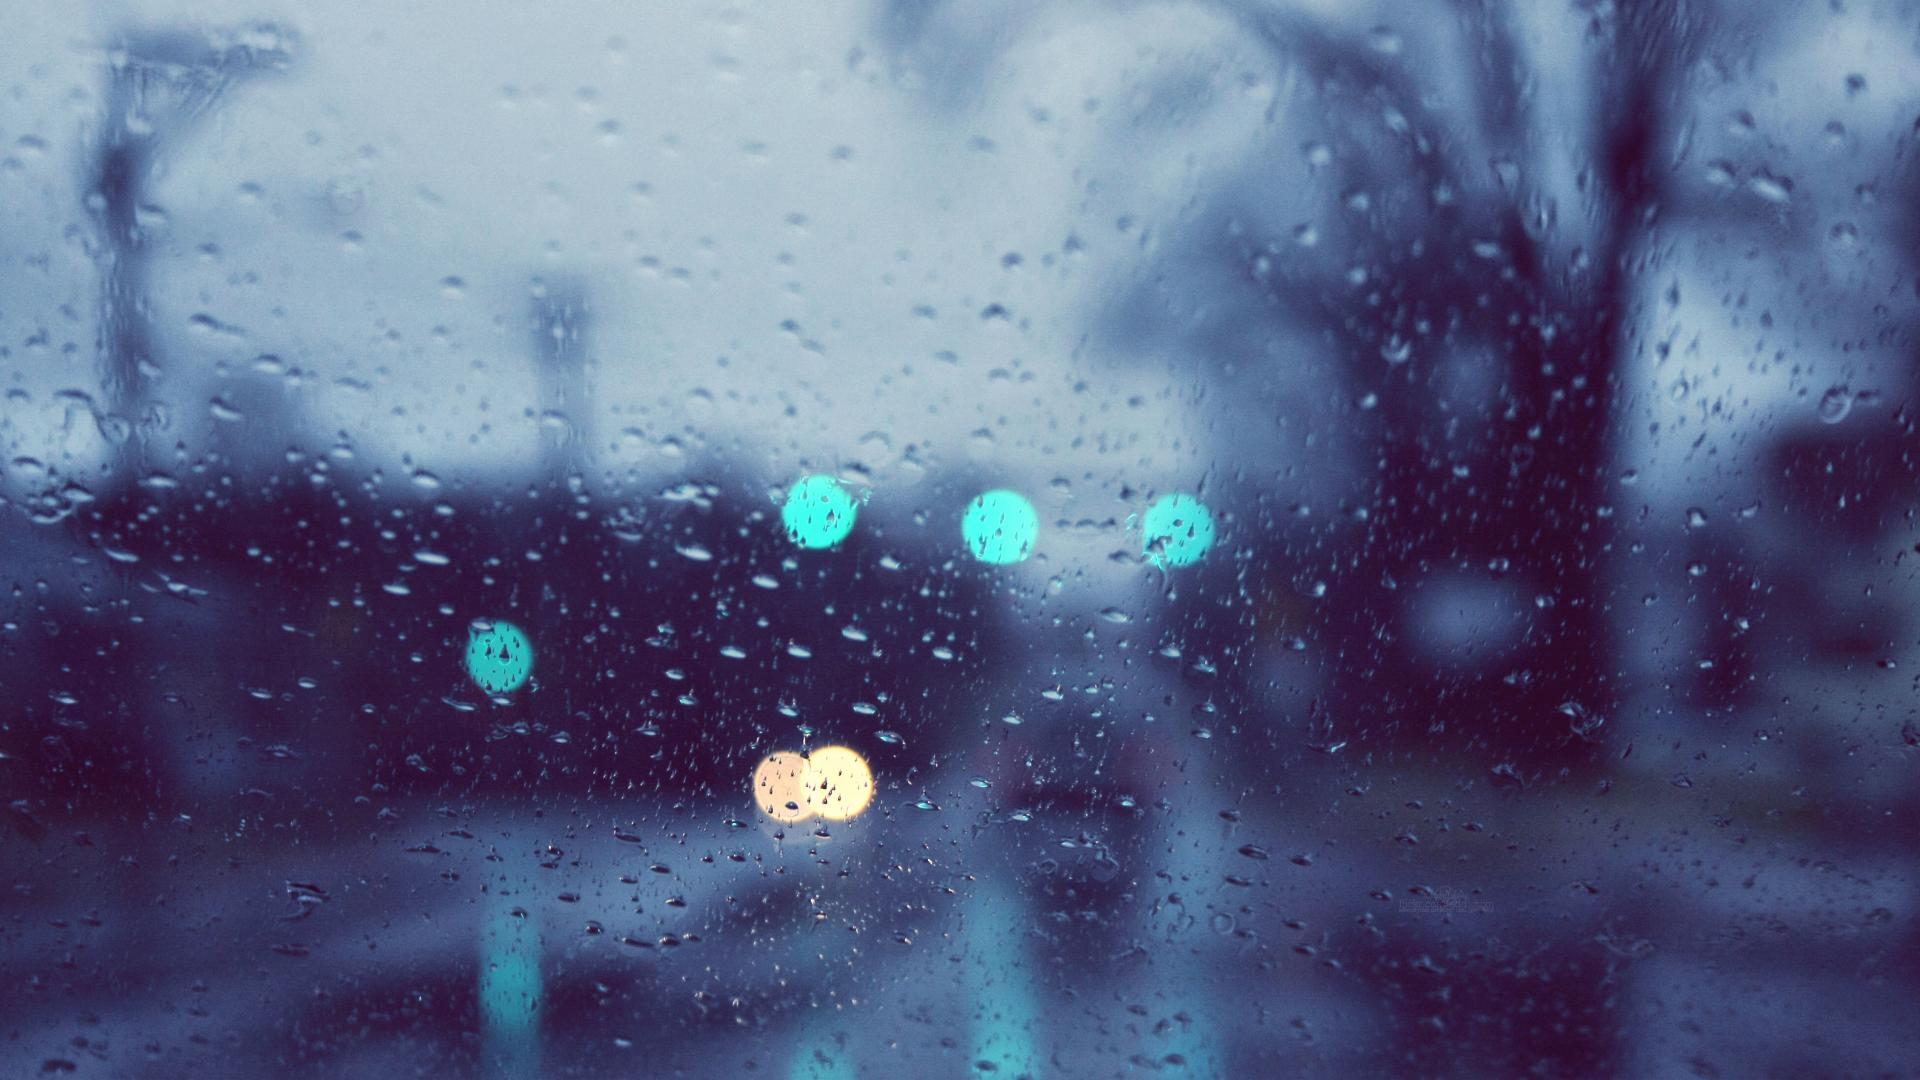 Rain HD Wallpapers For Desktop One HD Wallpaper Pictures Backgrounds 1920x1080